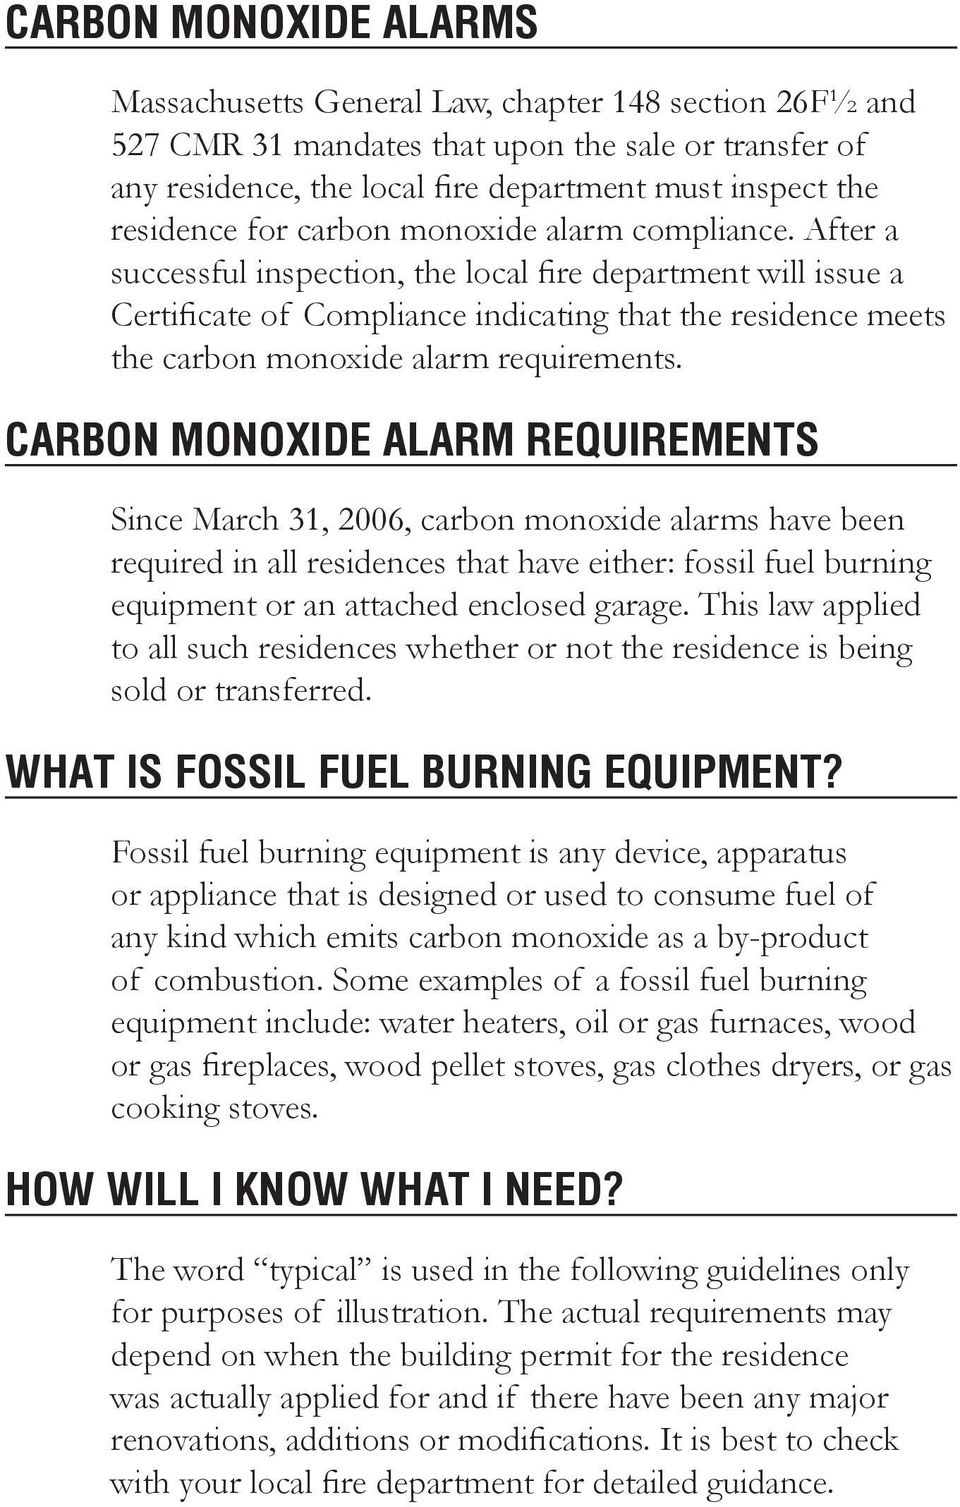 After a successful inspection, the local fire department will issue a Certificate of Compliance indicating that the residence meets the carbon monoxide alarm requirements.